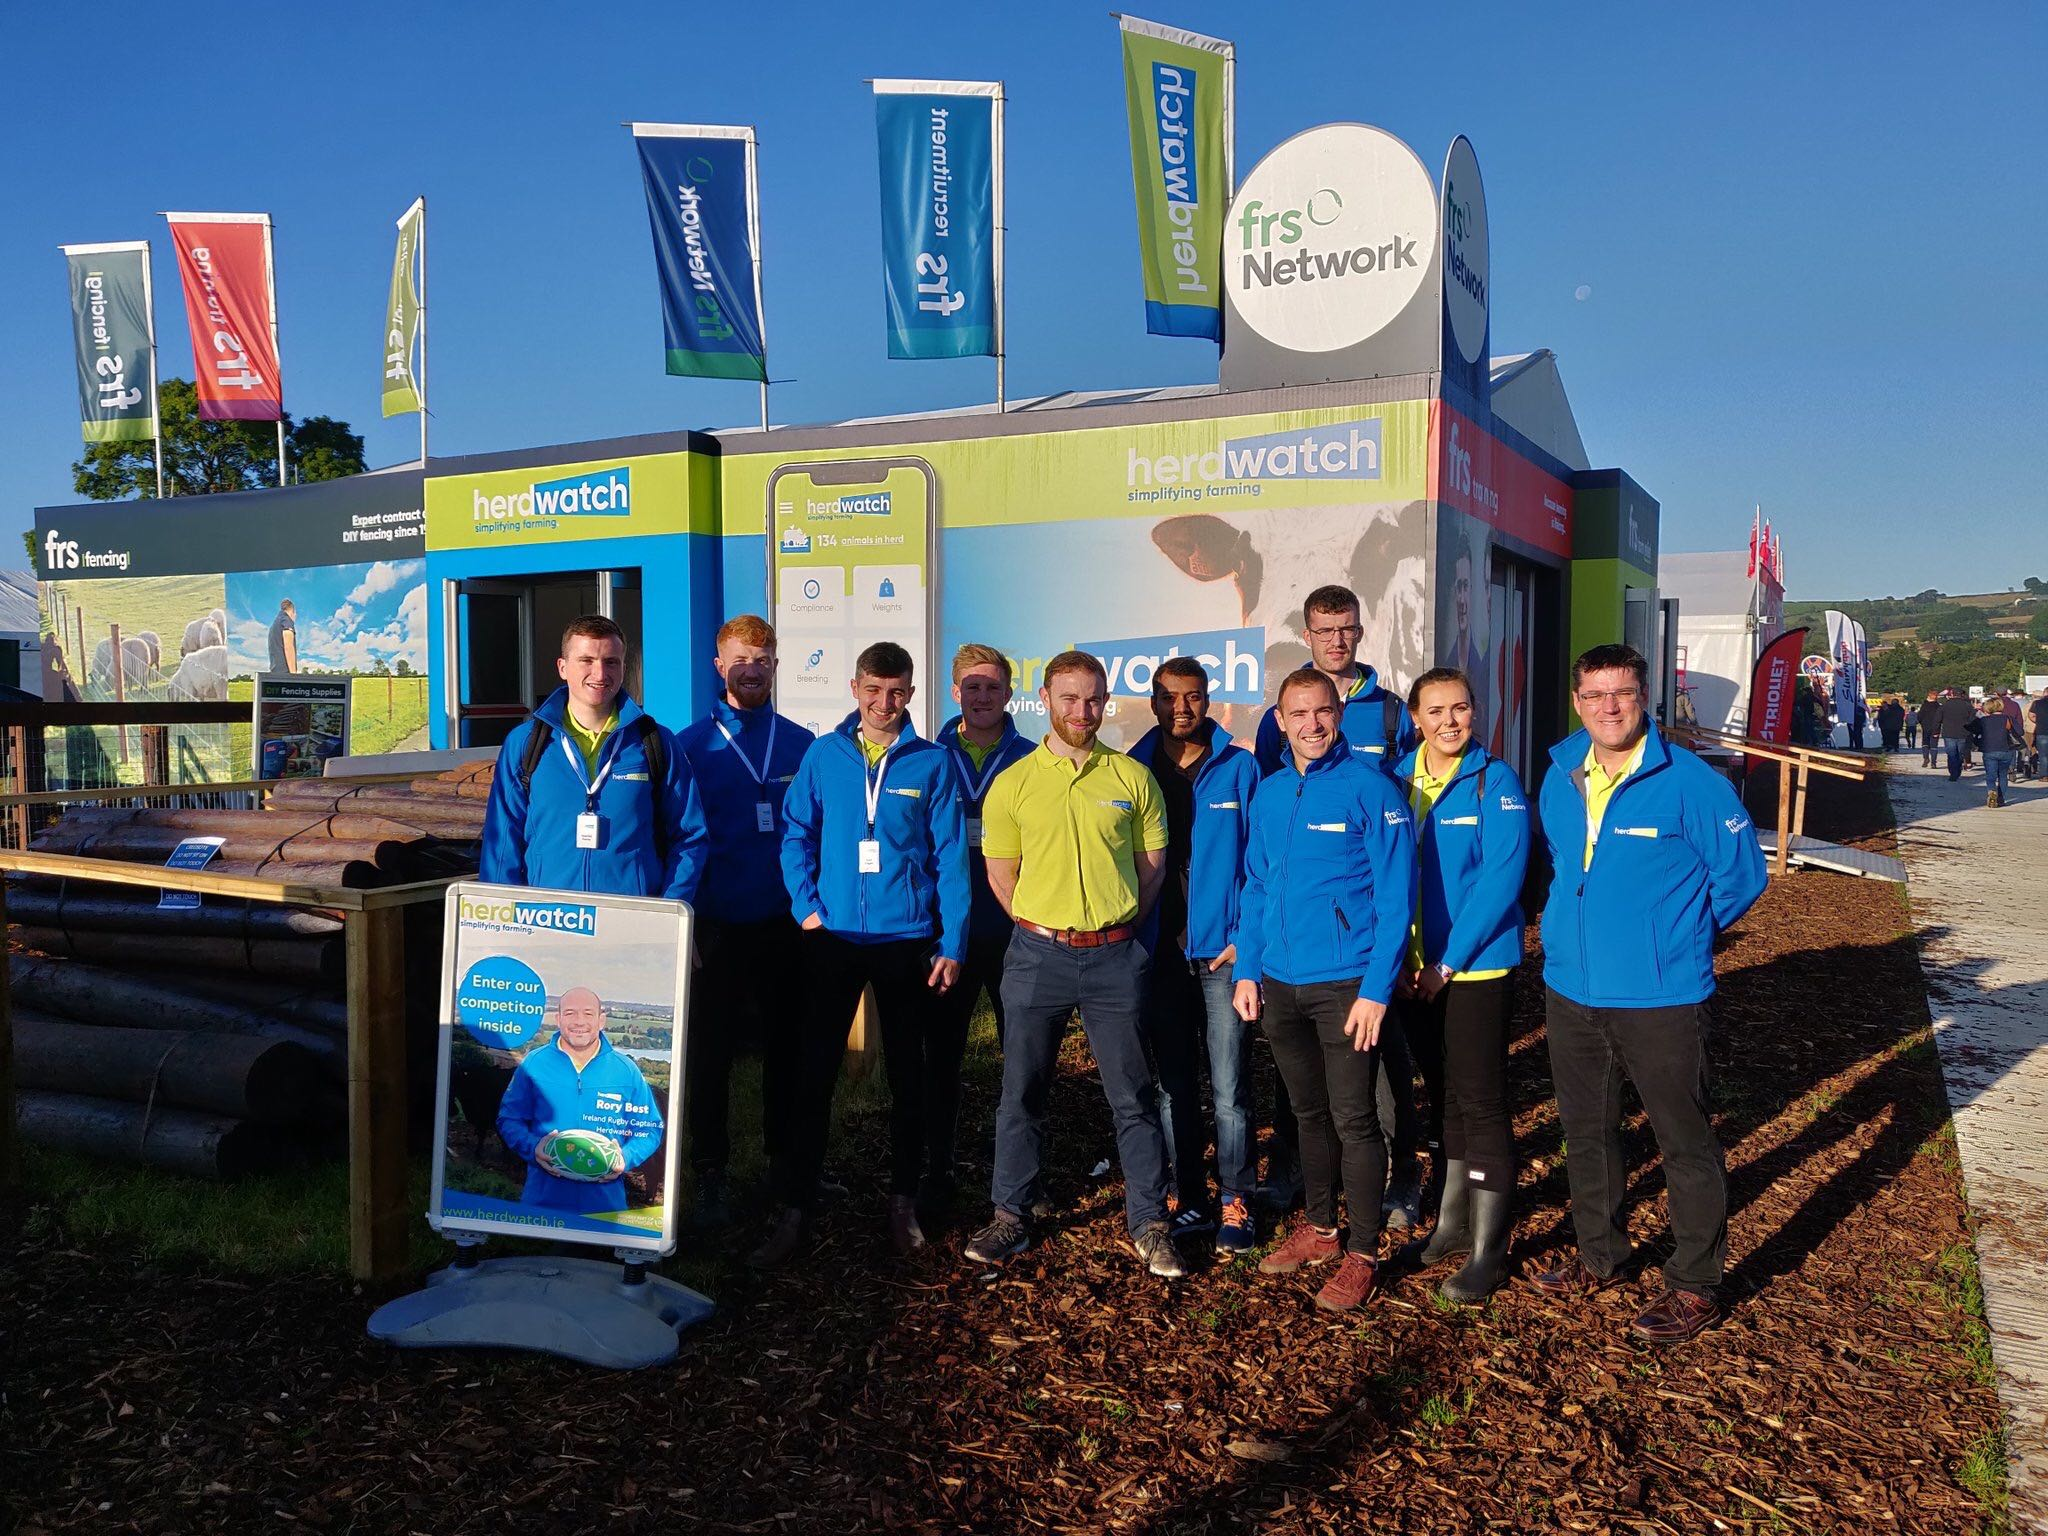 The Herdwatch team out in force at the National ploughing Championships 2019